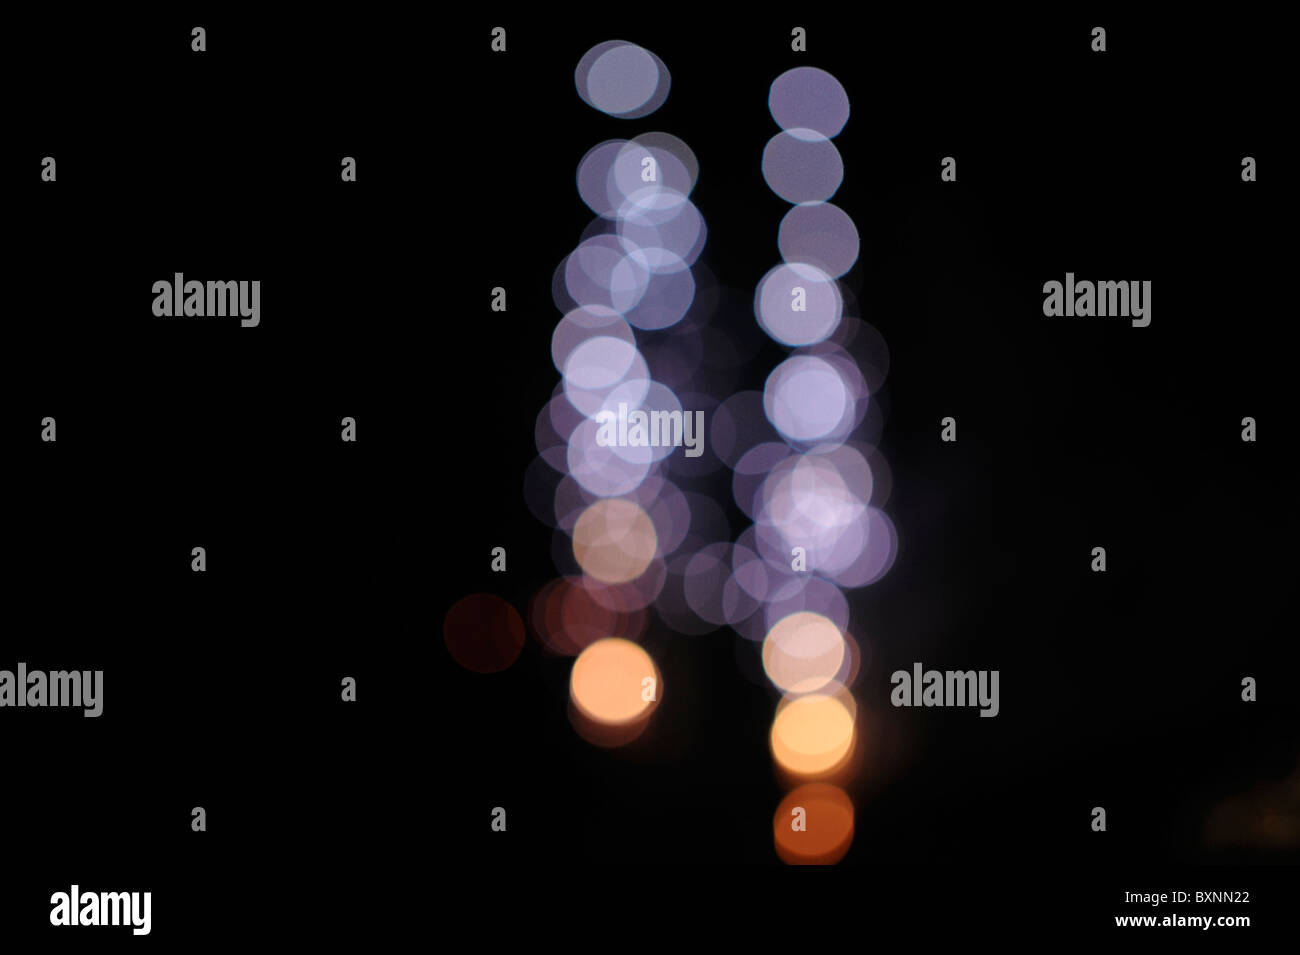 Abstract light patterns - Stock Image